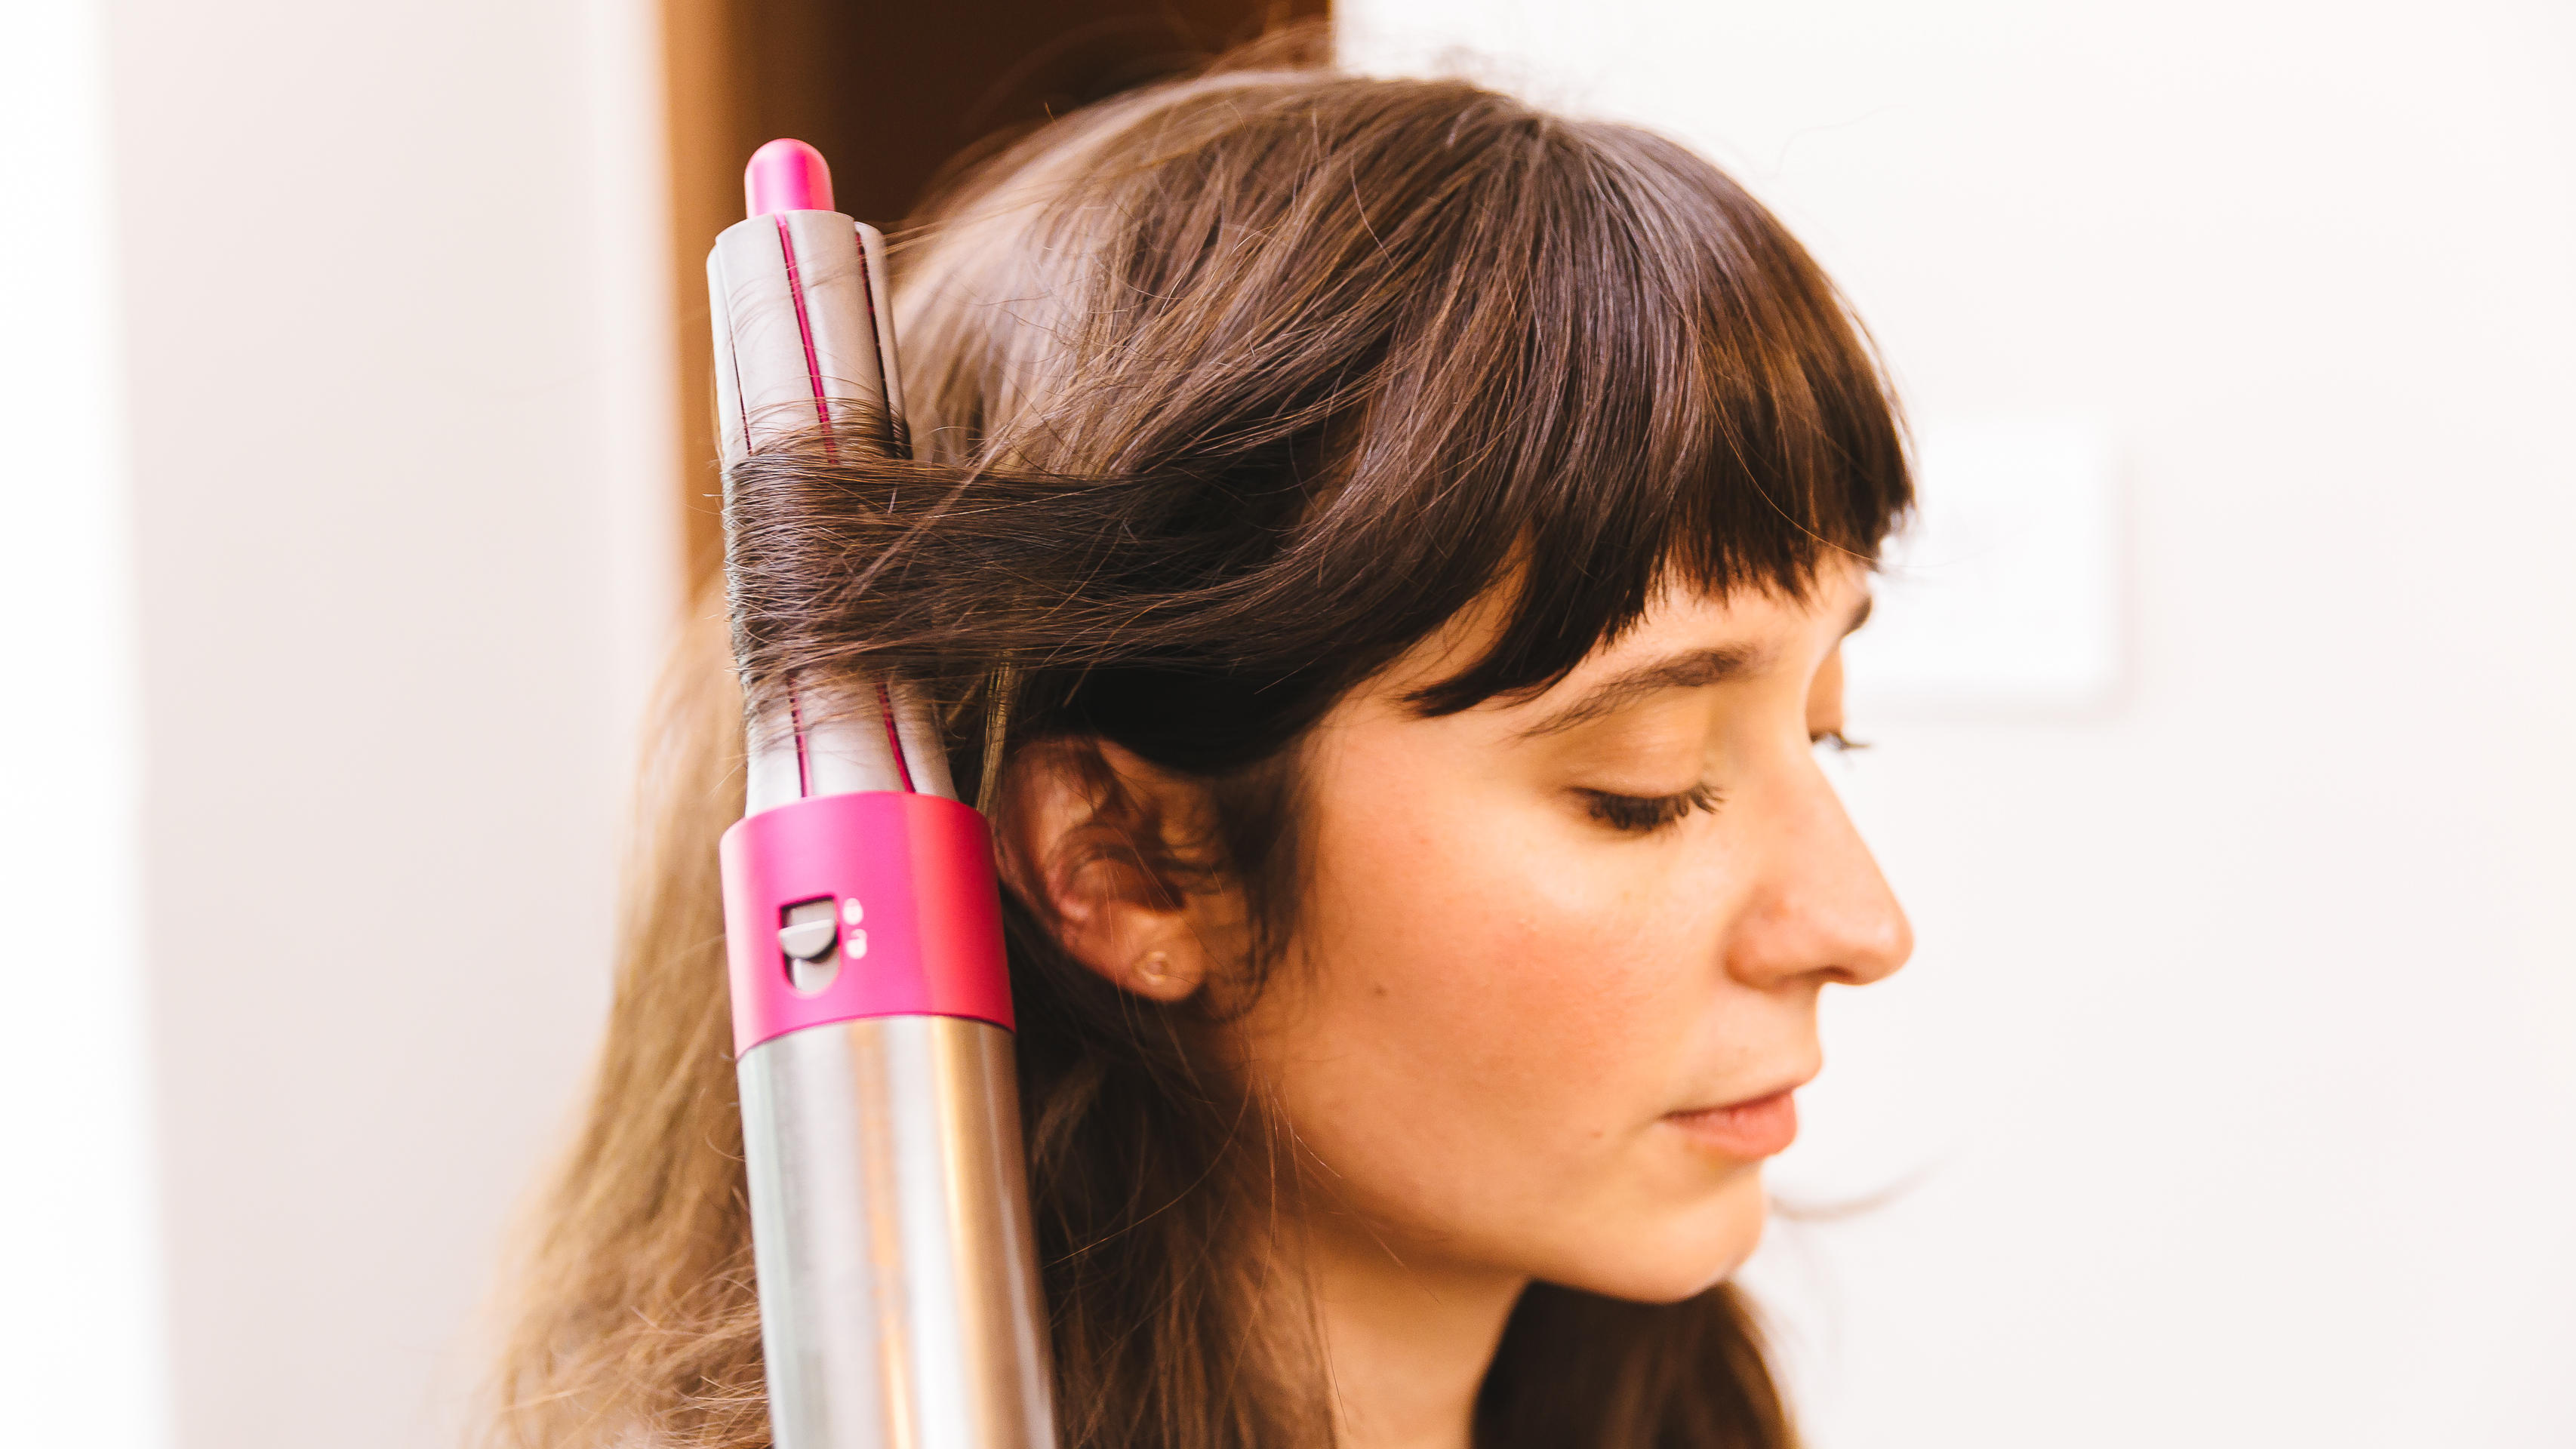 Video: The Dyson Airwrap hair styler falls short